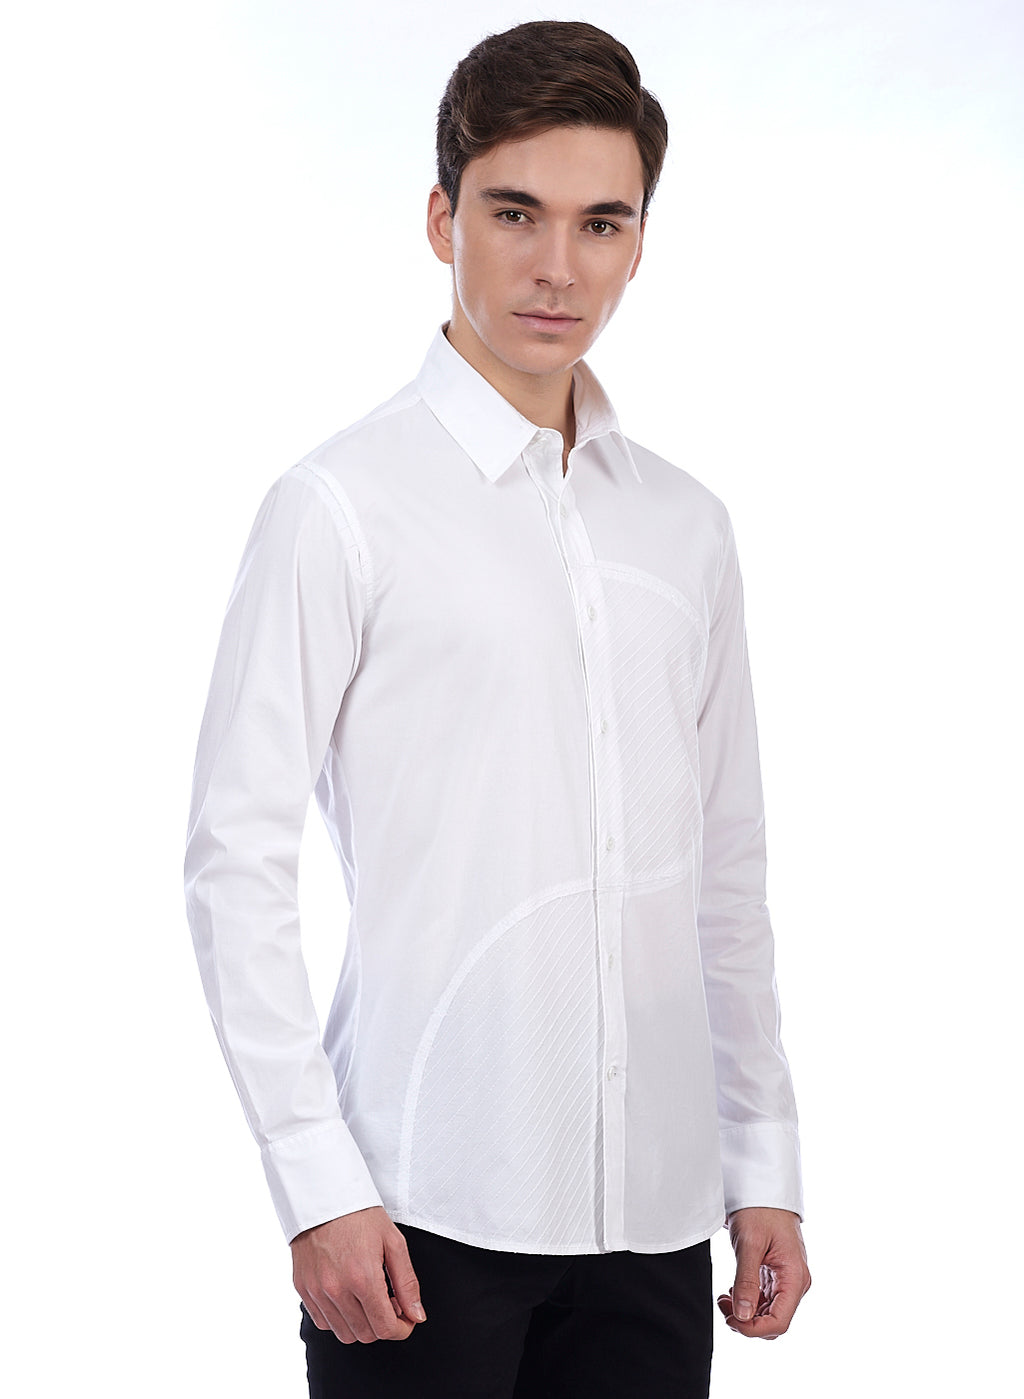 Lecoanet Hemant Men's Euro~Fit Designer Cotton Shirts